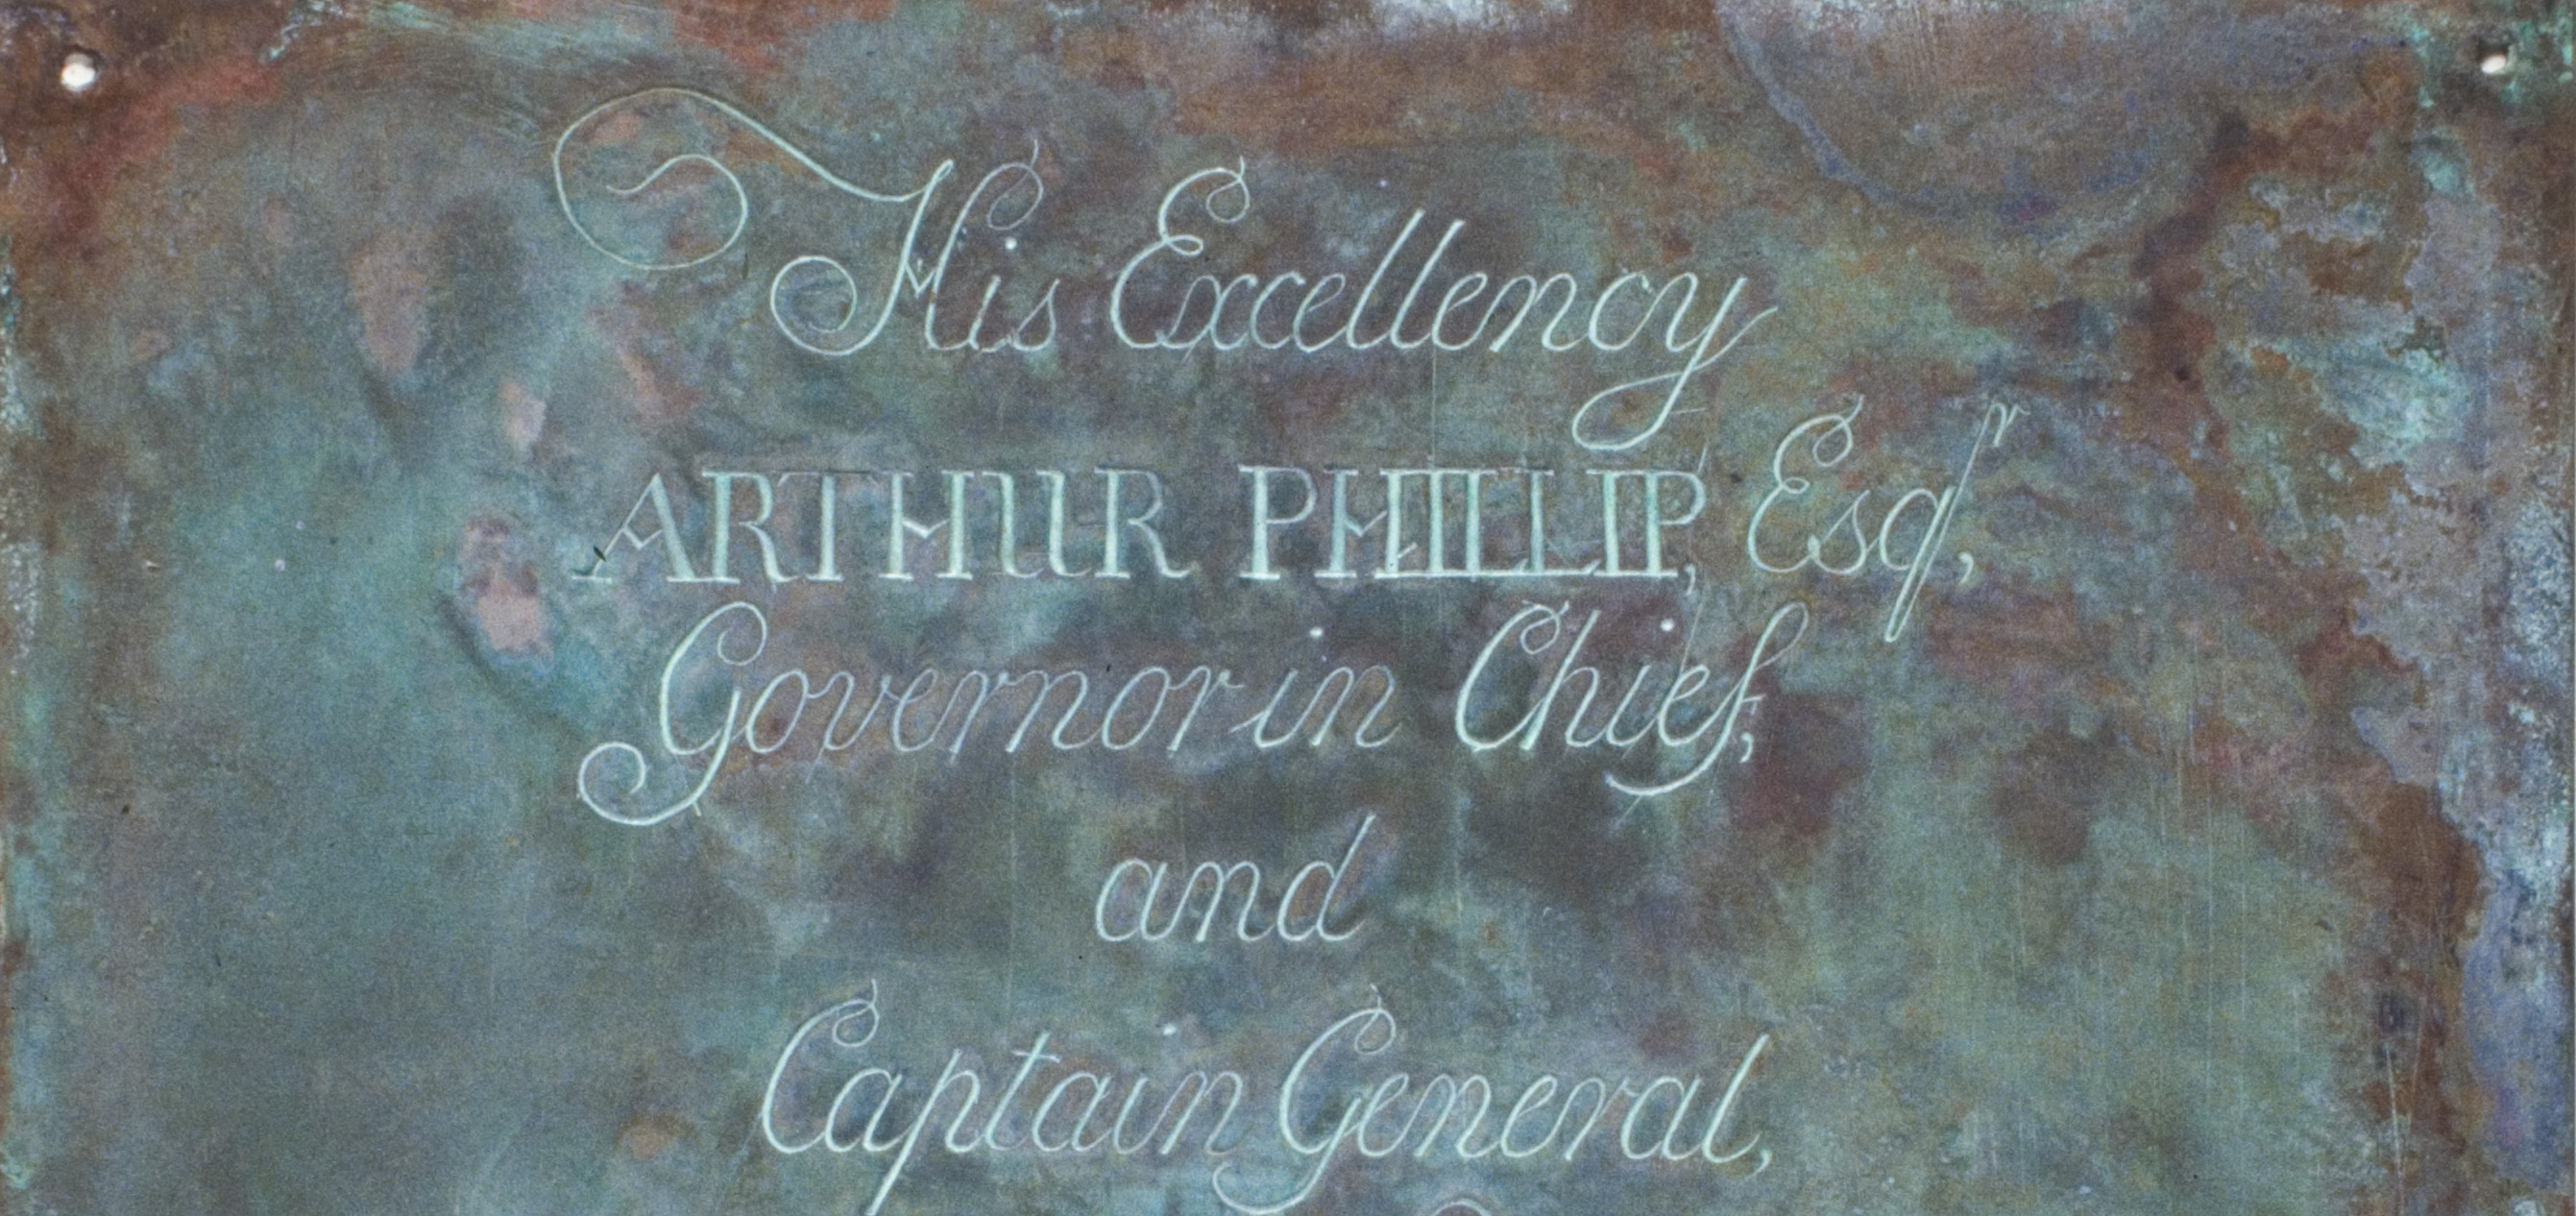 """Detail of copper plate engraved with the words """"His Excellency Arthur Phillip Esq. Governor in Chief and Captain General"""""""